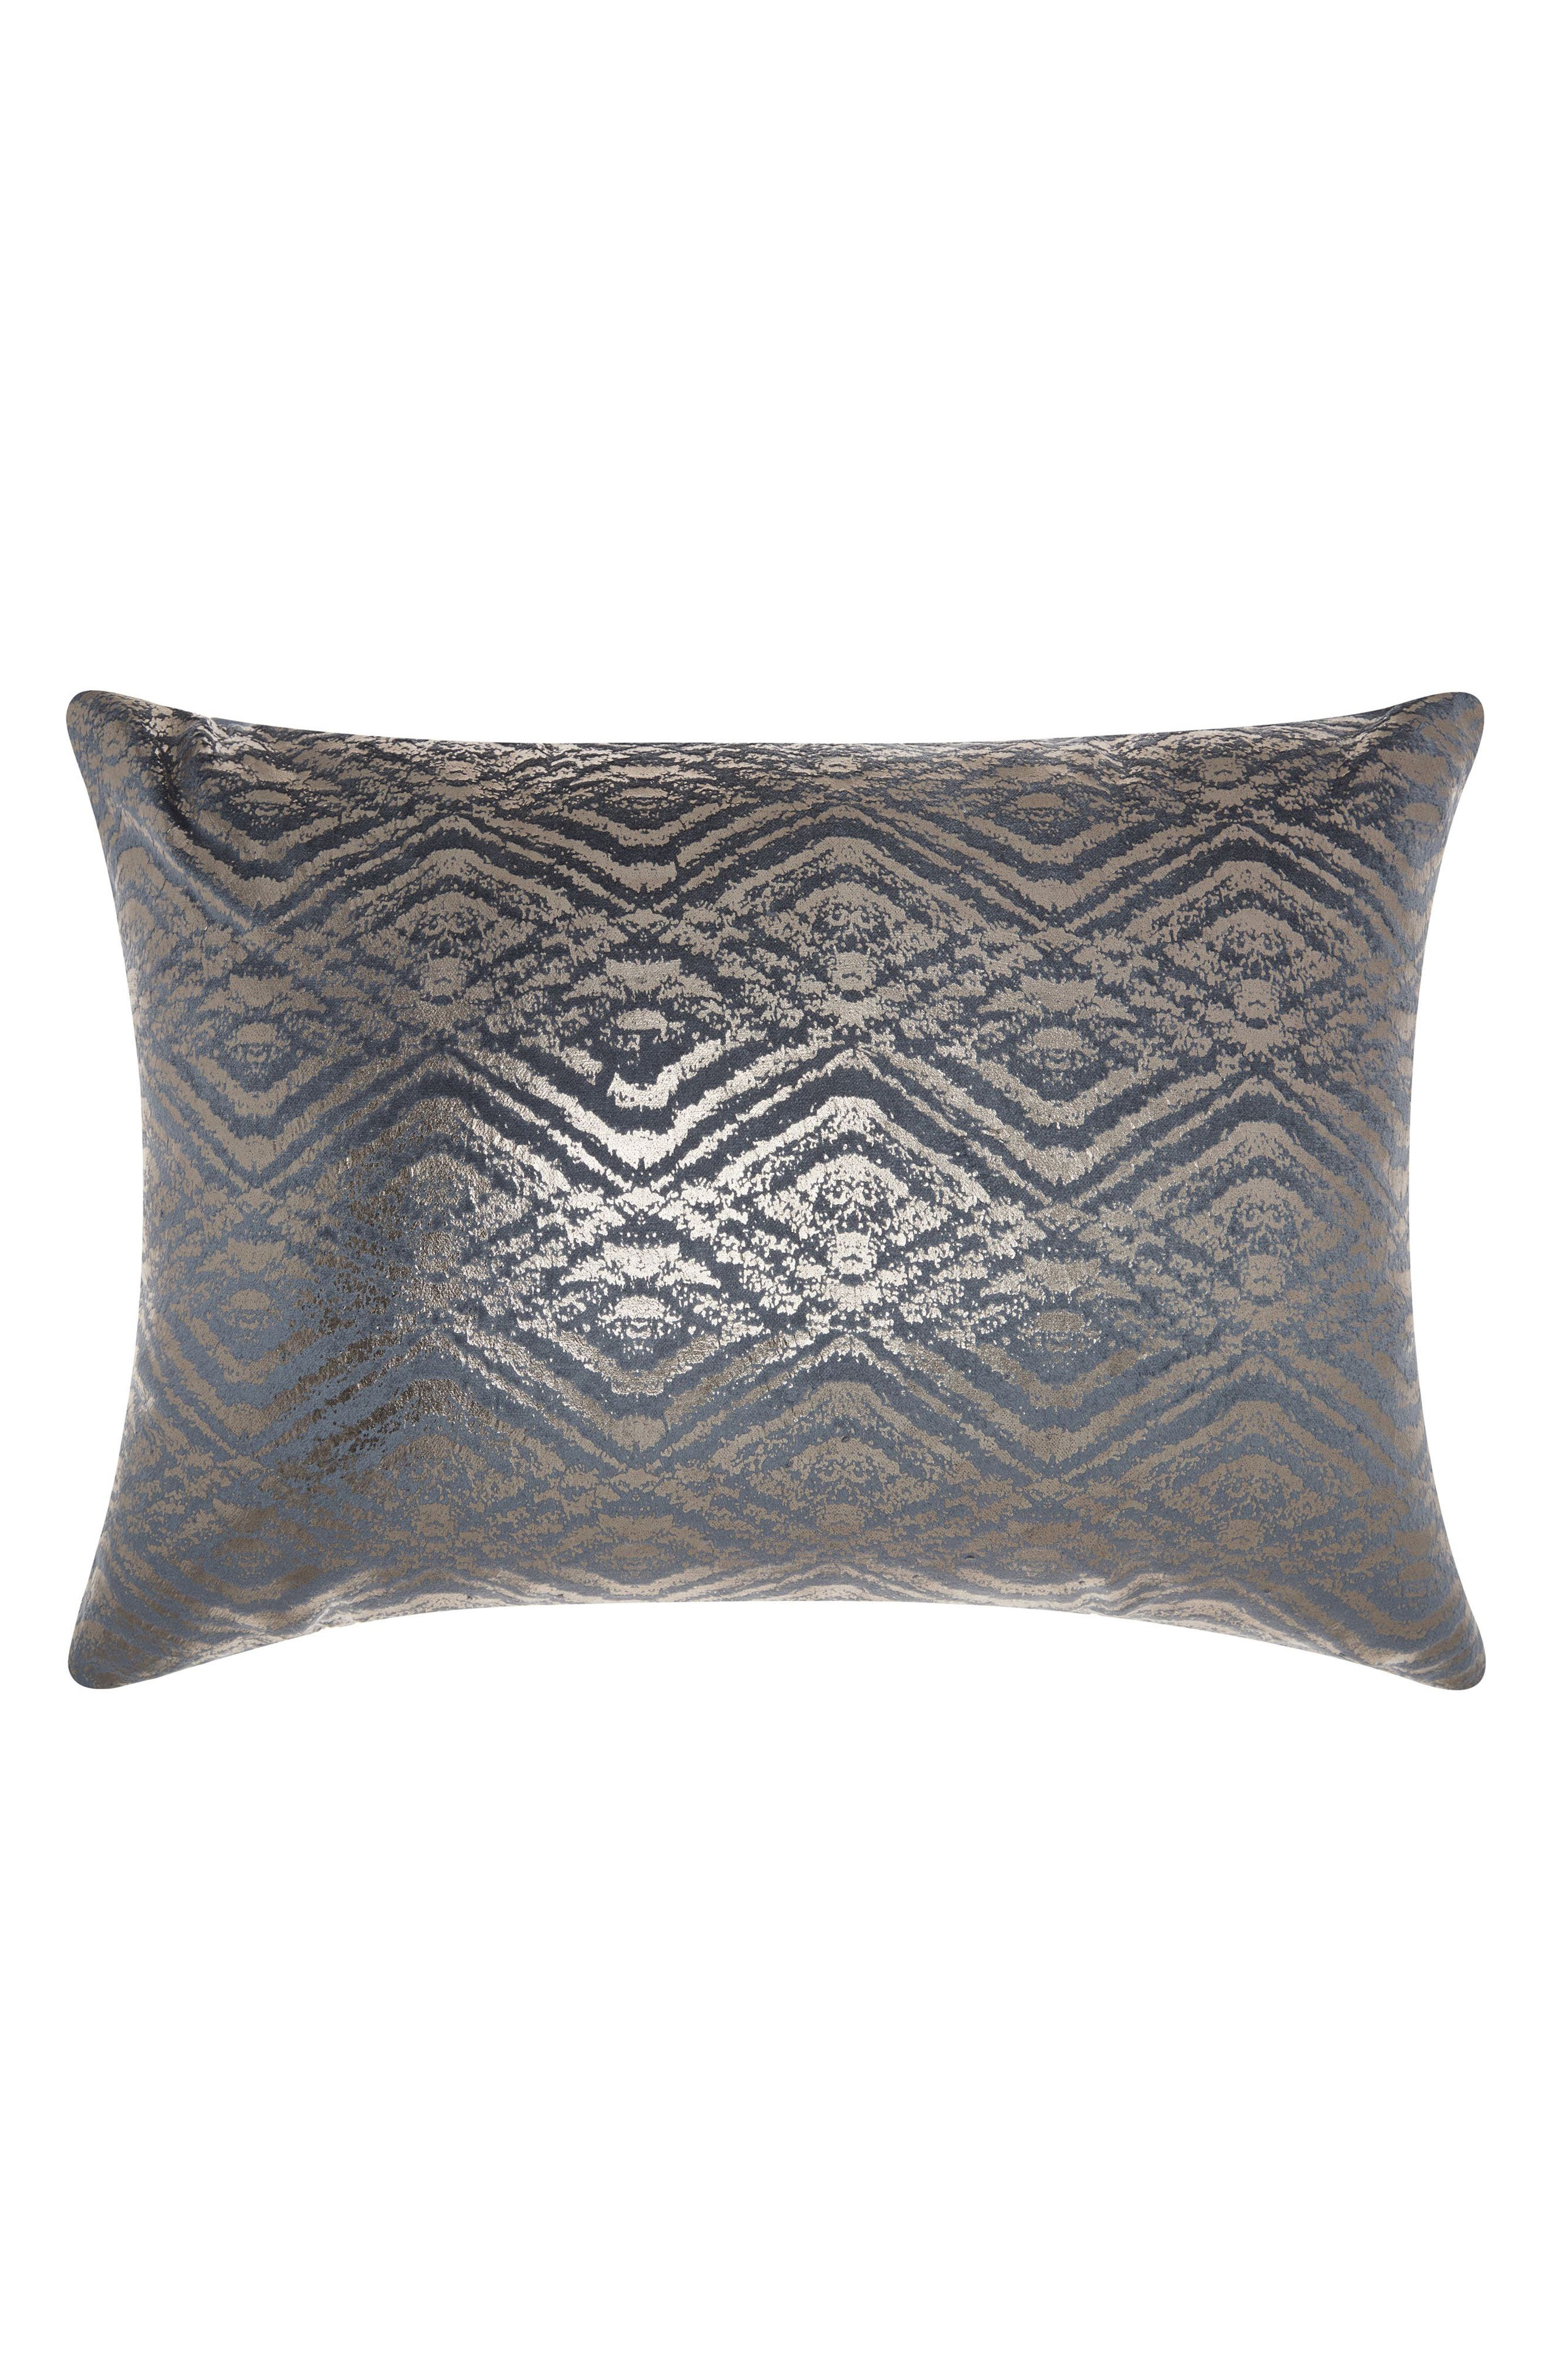 Metallic Diamonds Accent Pillow,                             Main thumbnail 1, color,                             Blue